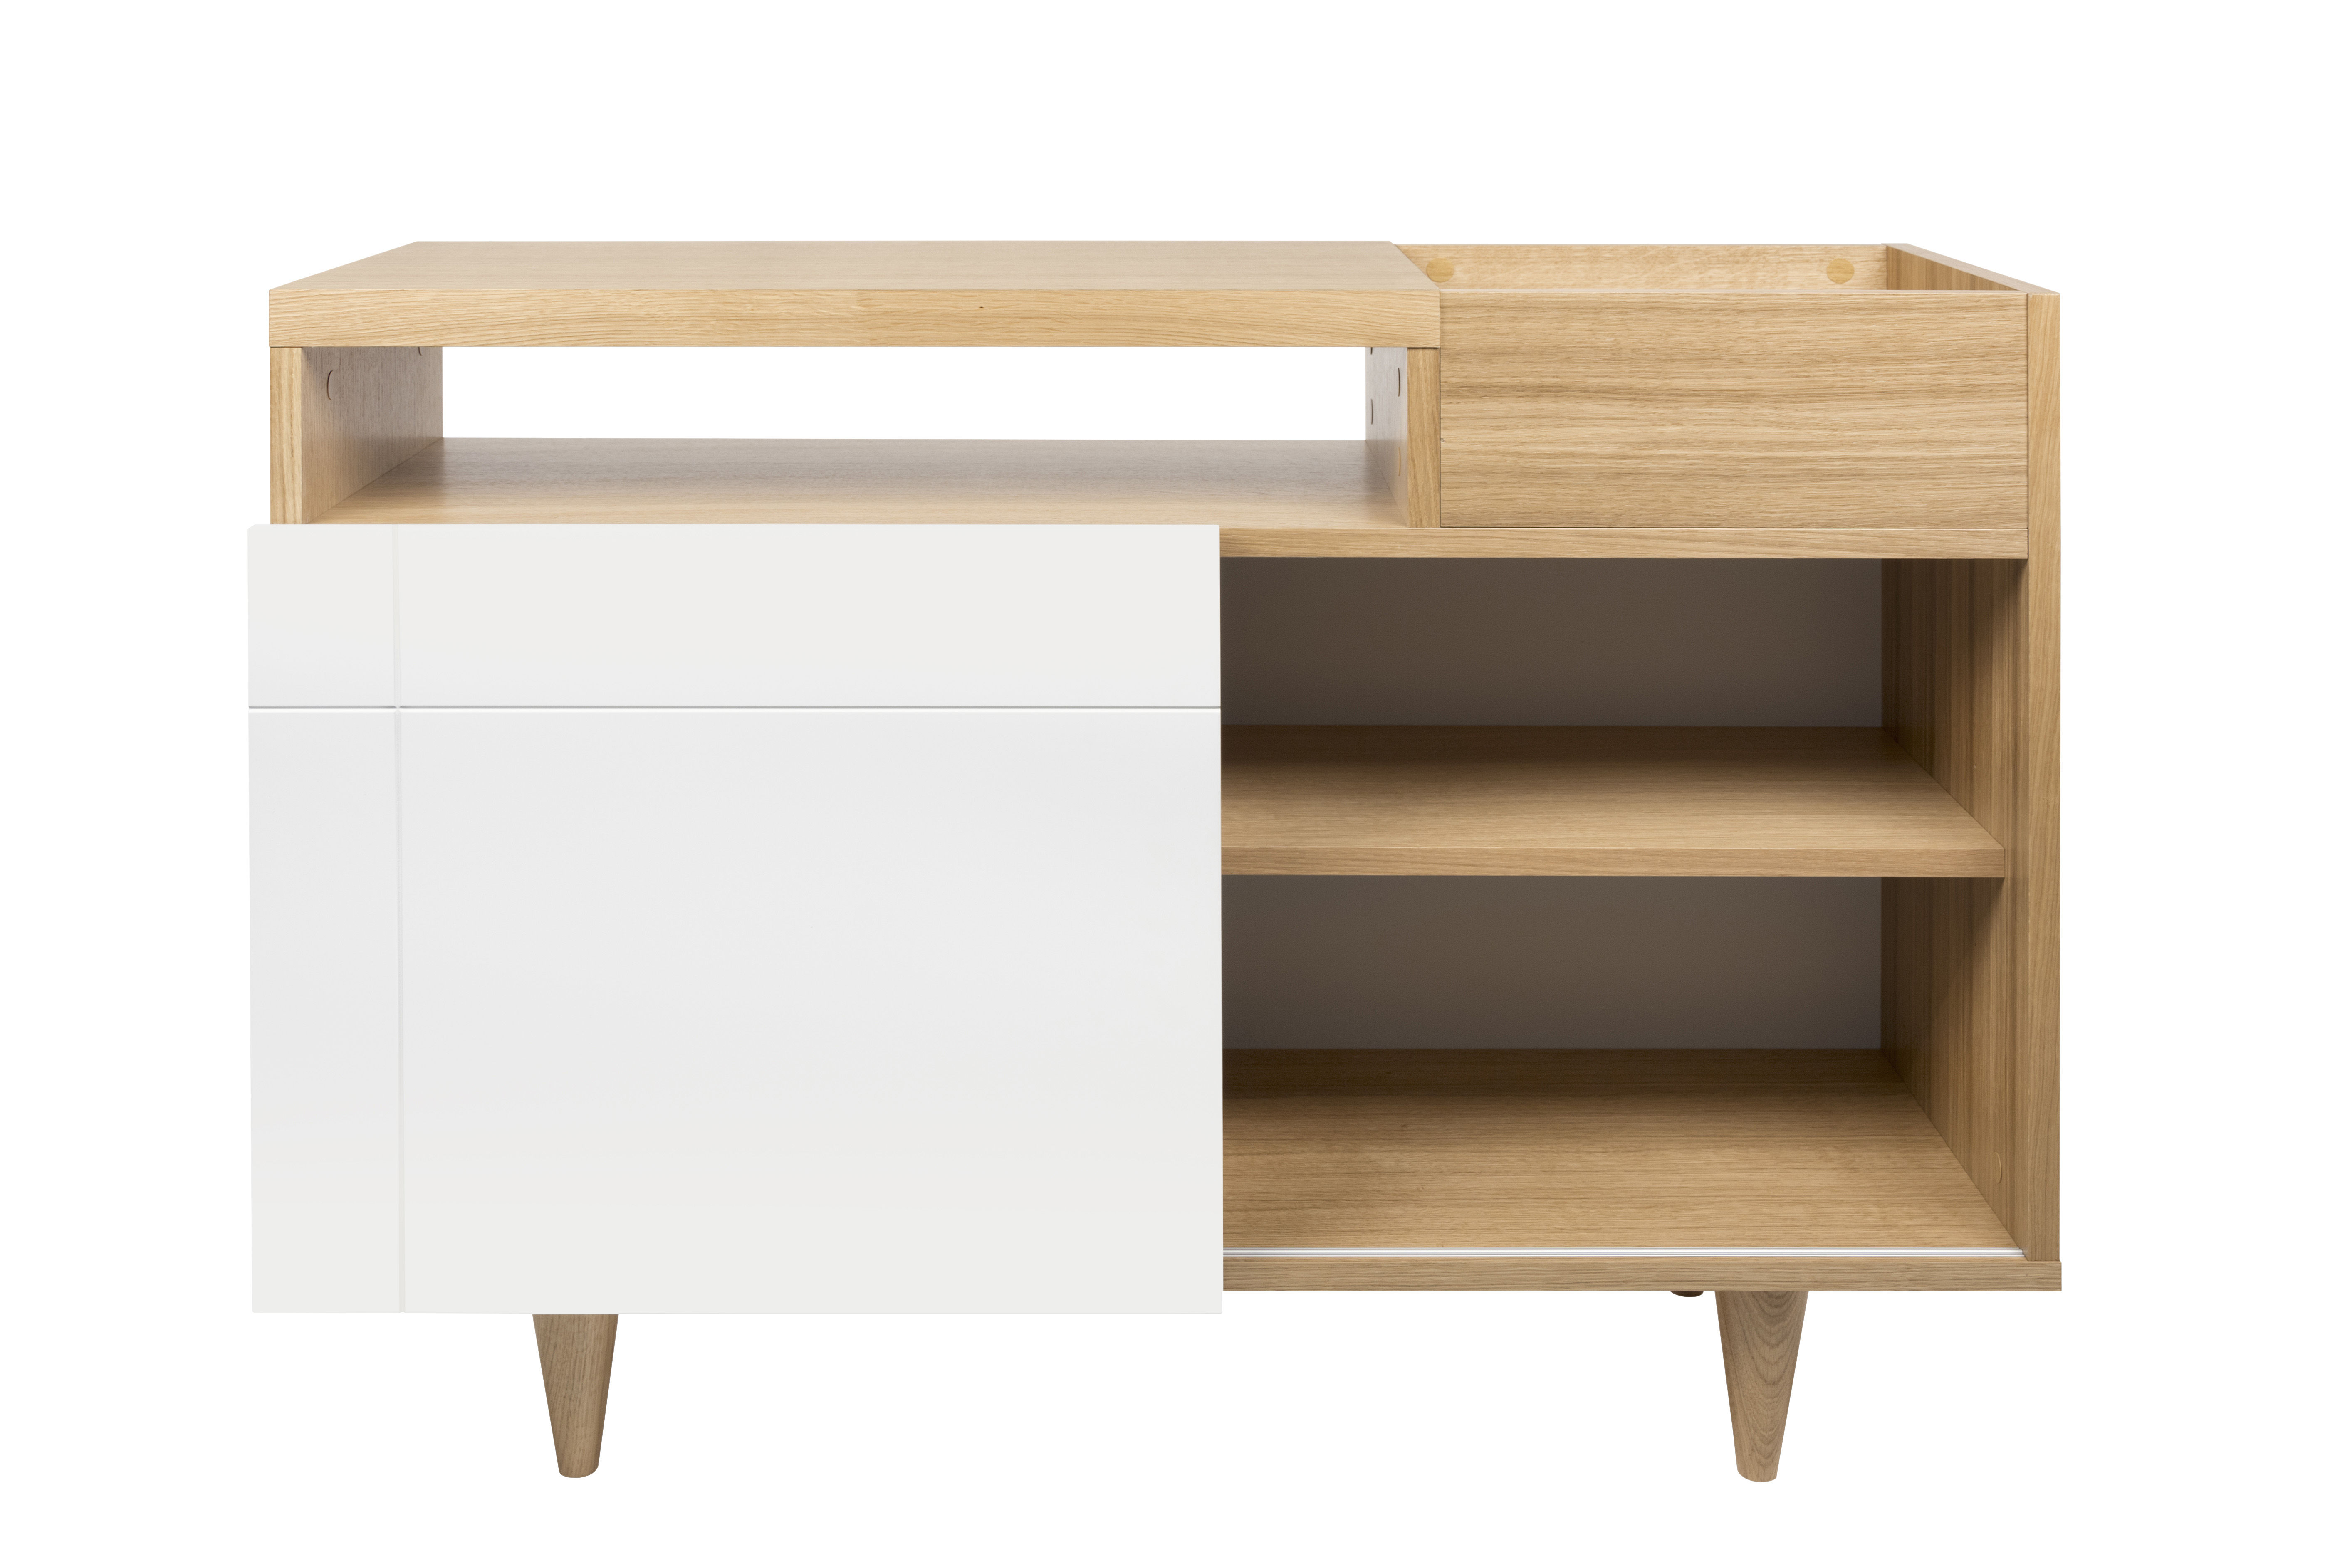 Furniture - Dressers & Storage Units - Slide Dresser - L 110 x H 82 cm by POP UP HOME - White / Oak - Painted MDF, Plywood with oak veneer